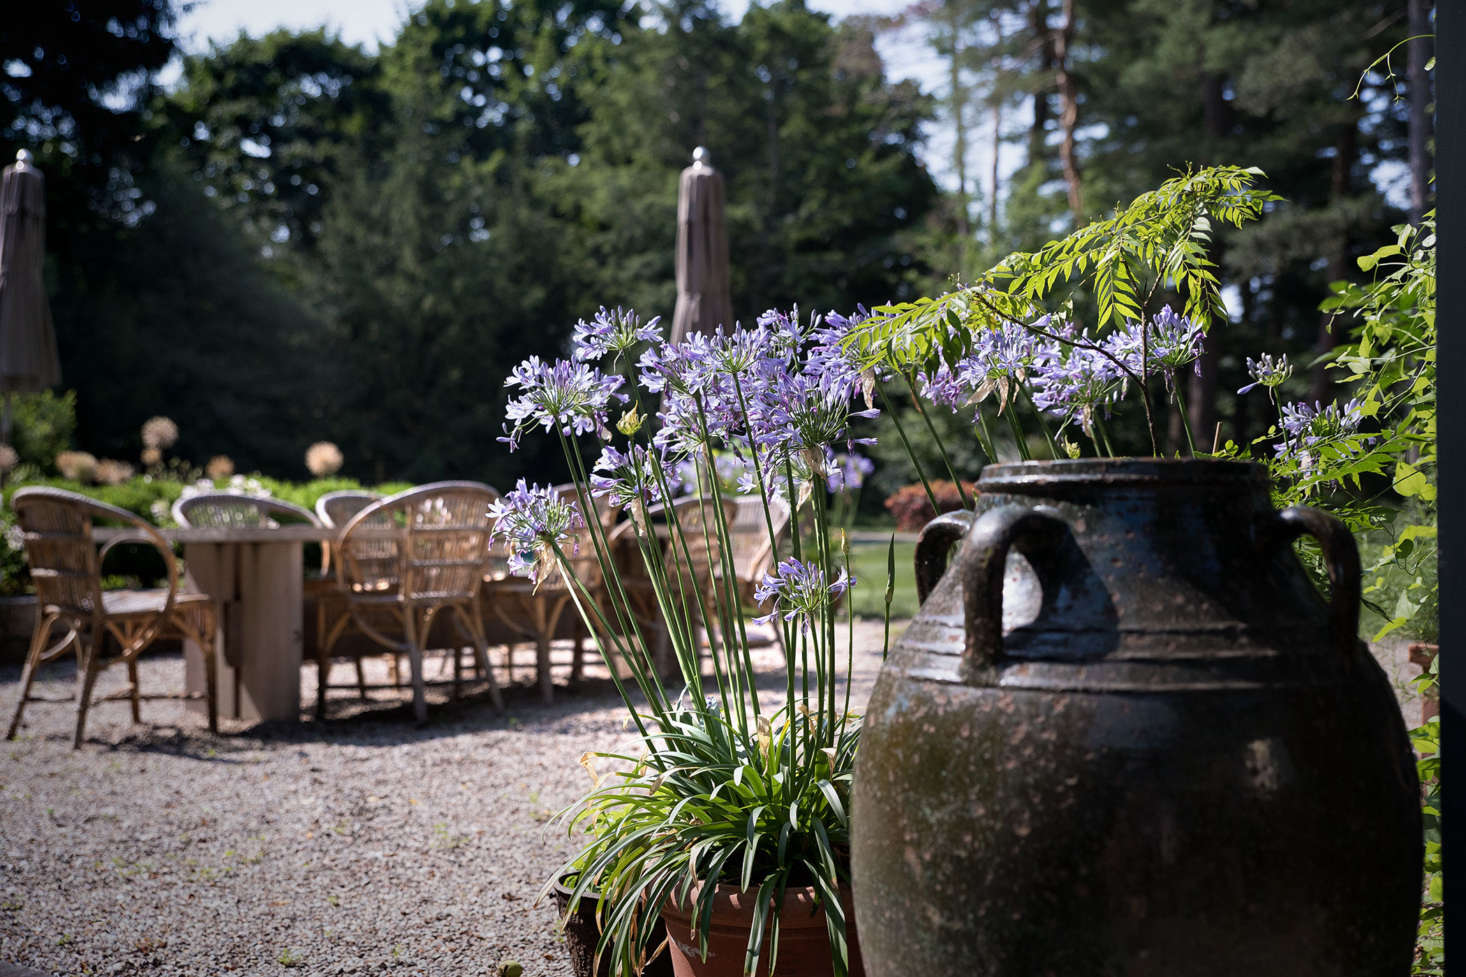 Plantings and garden accents such as agapanthus and urns maintain the Mediterranean feel.